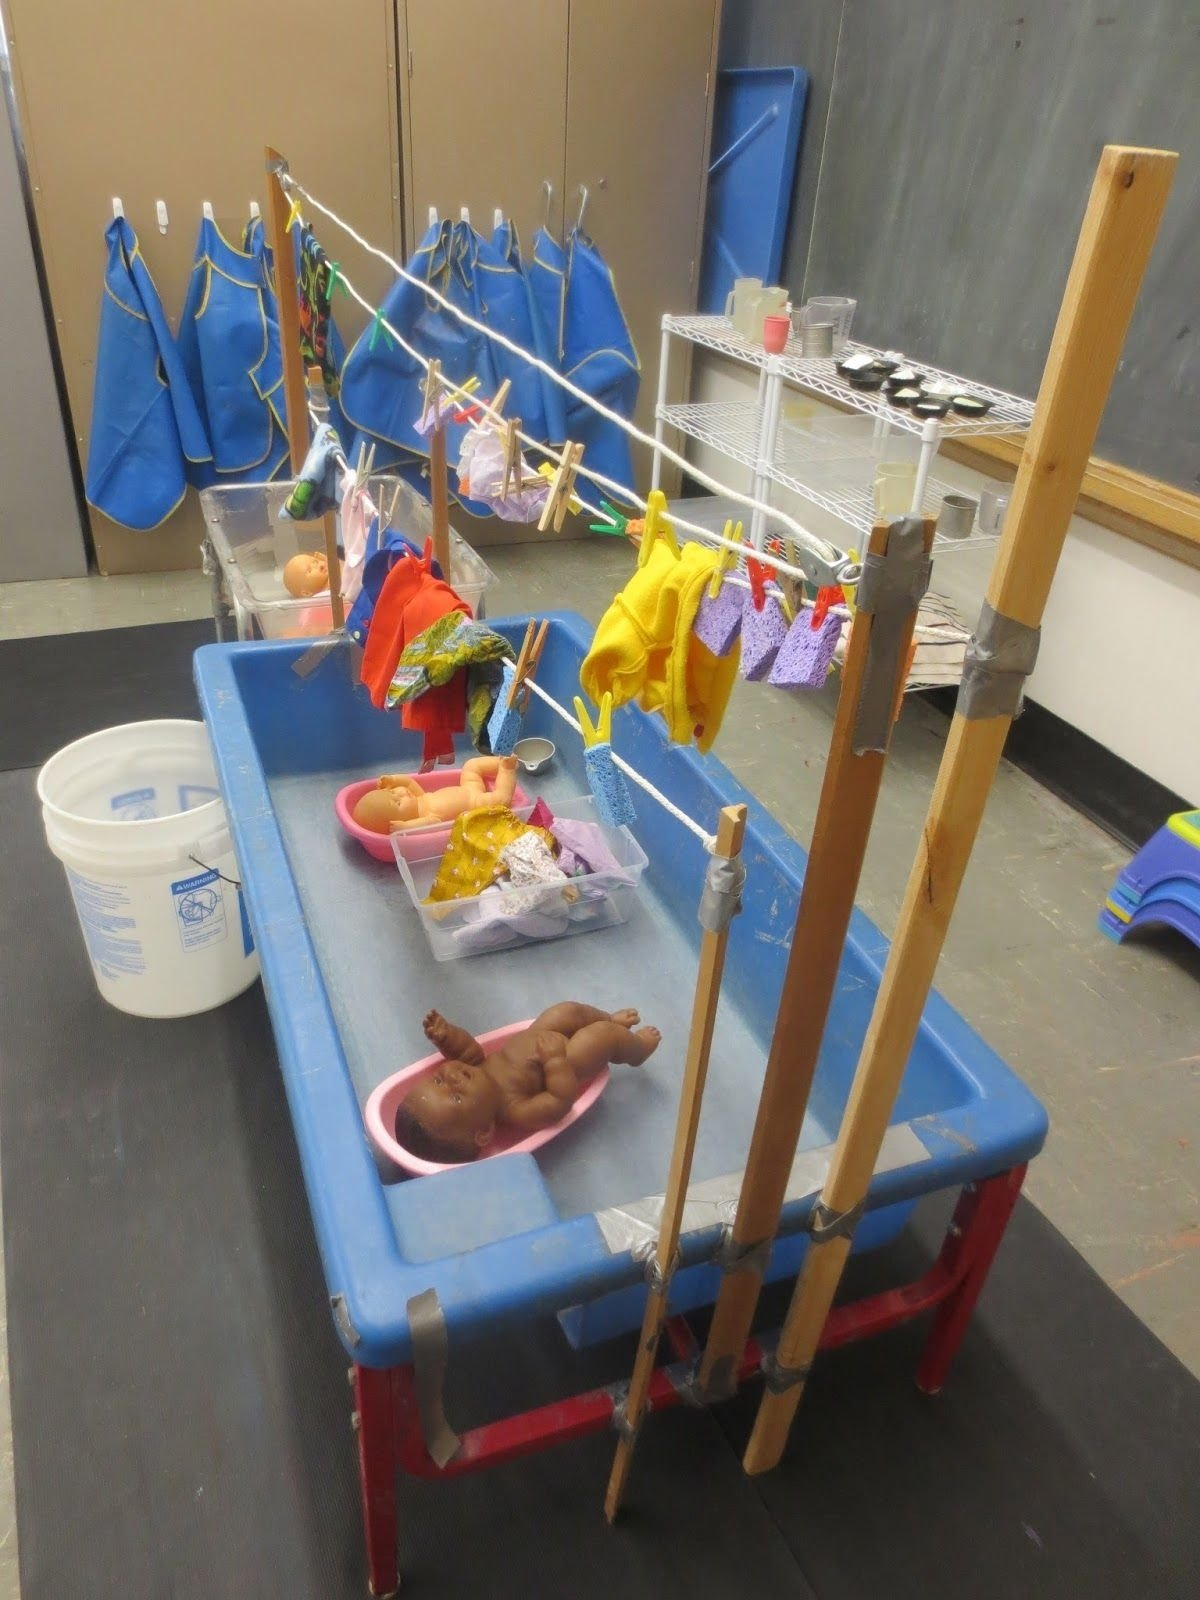 10 Lovely Sand And Water Table Ideas washing doll clothes and hanging them up to dry links to the 2020